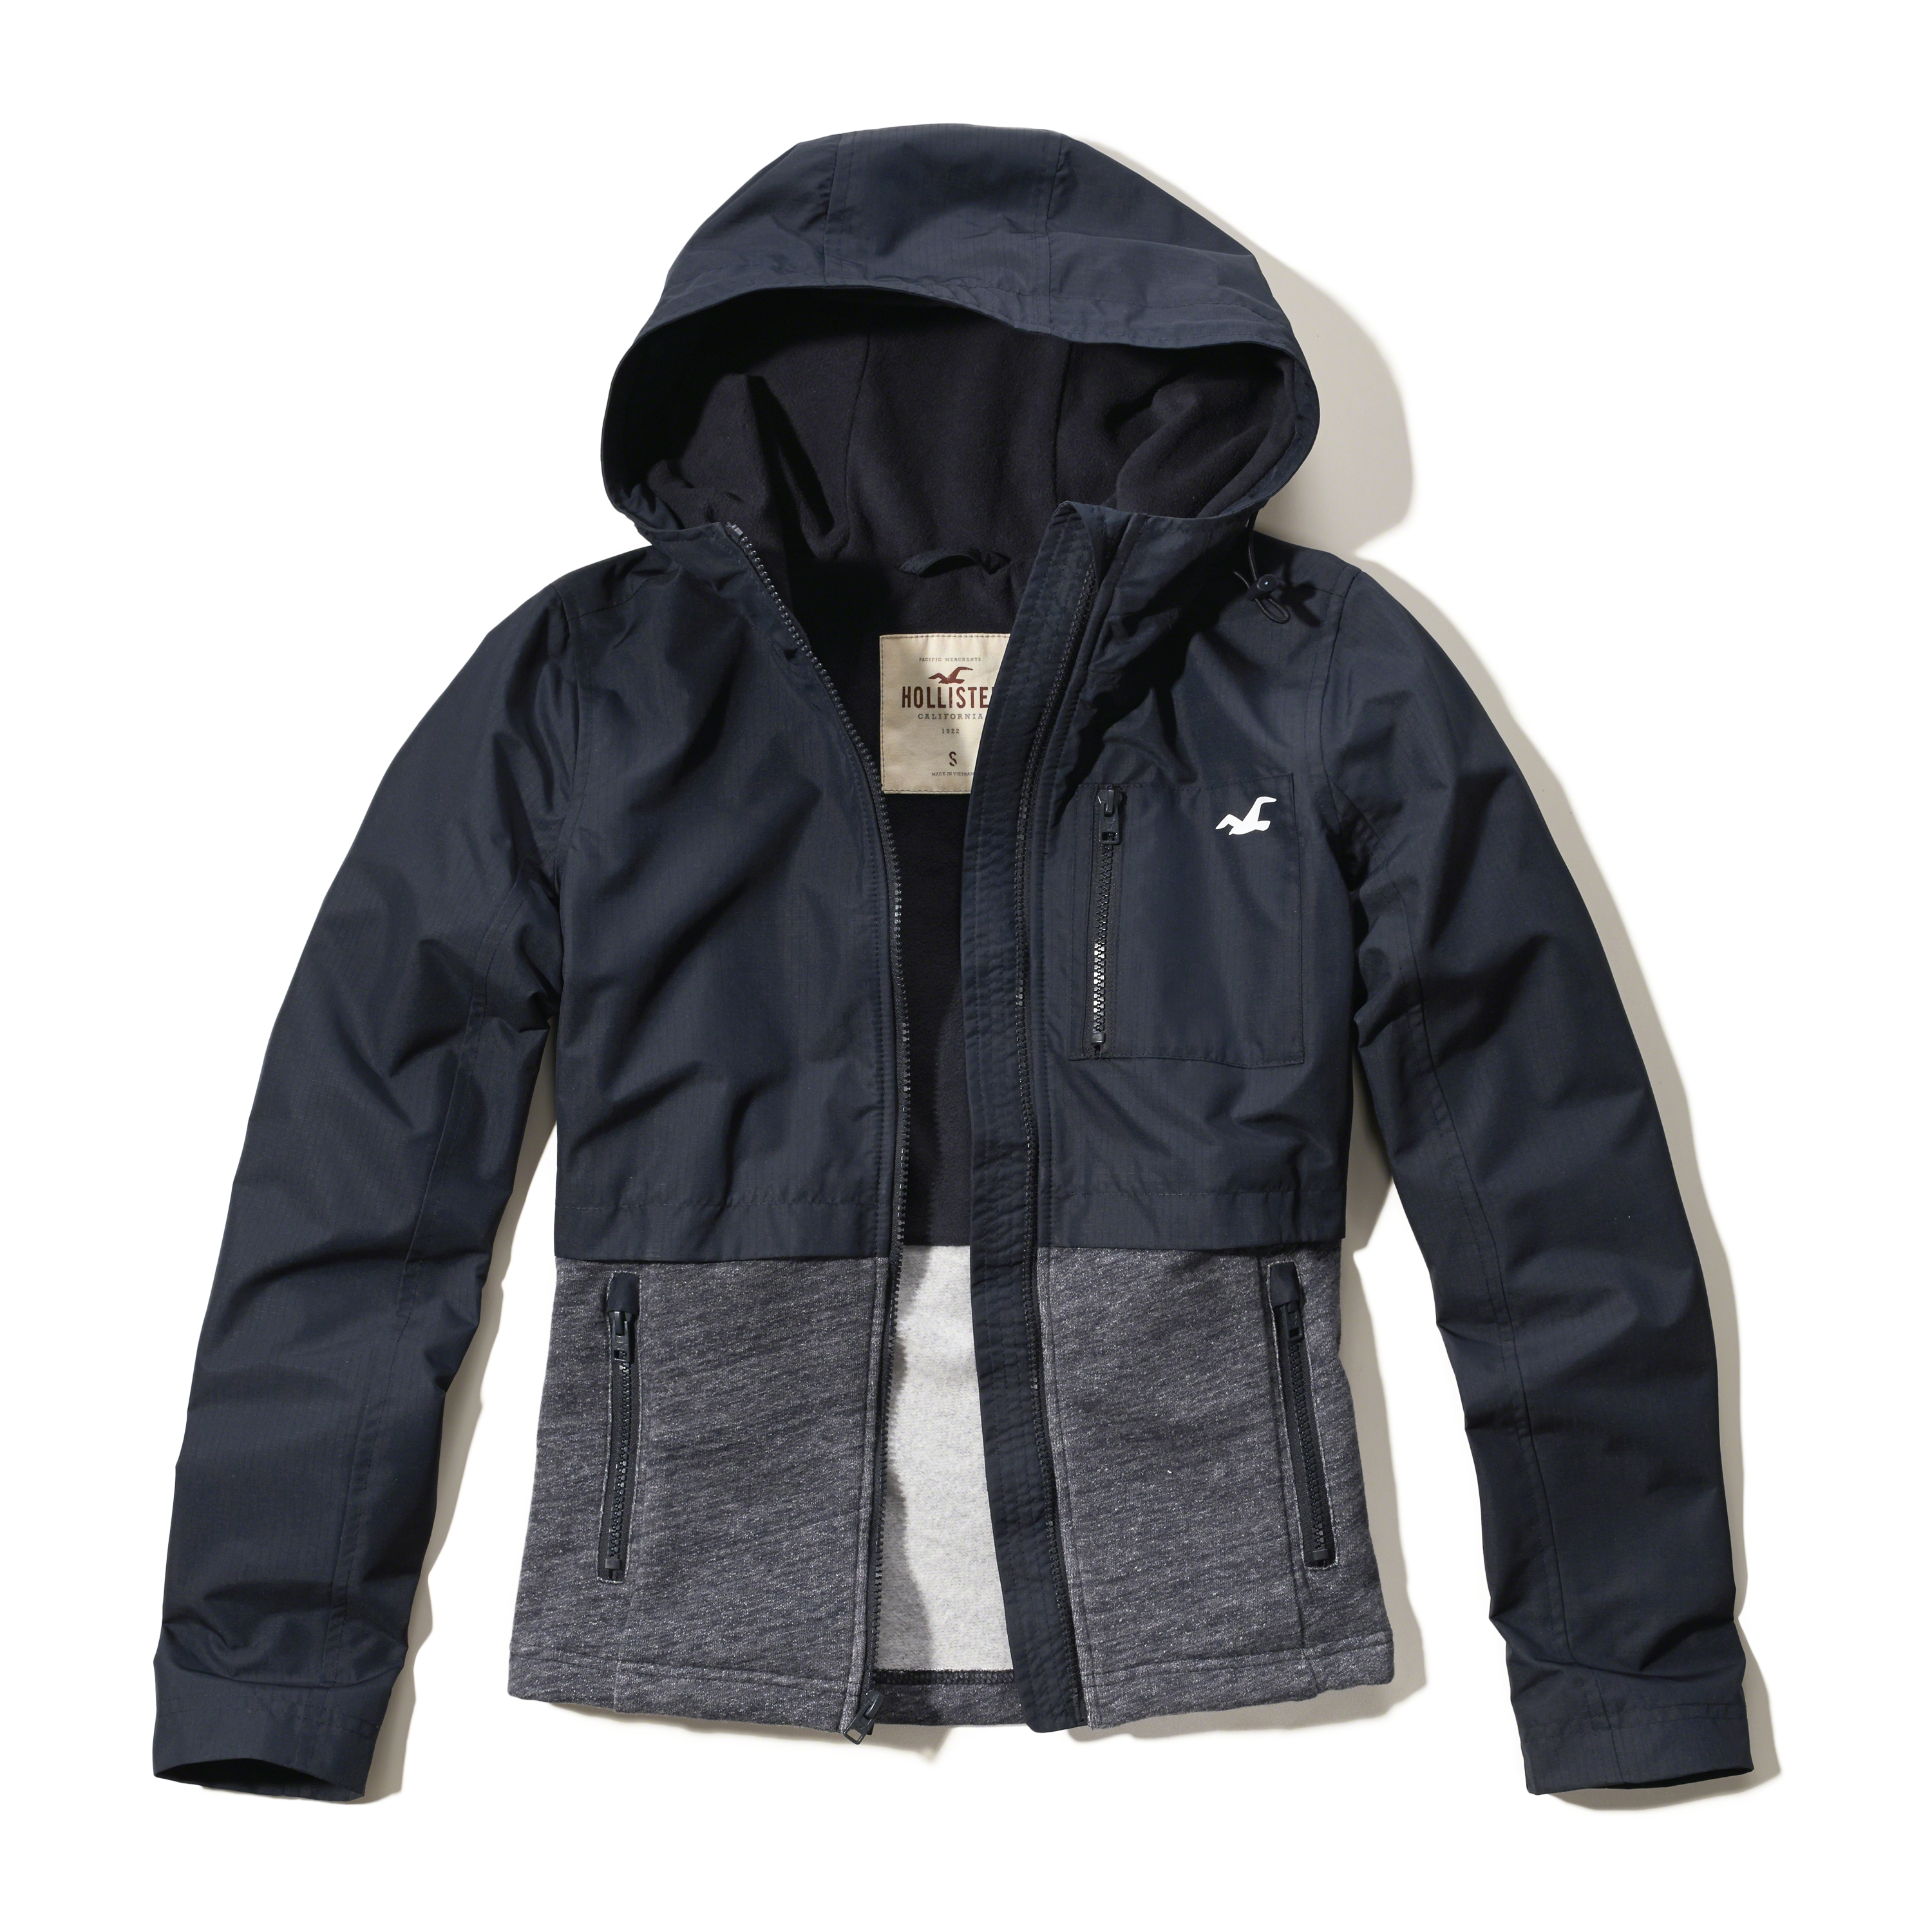 Hollister Sweaters Hollister Hoodies Hollister Shirts Hollister Jacket Hollister Pants Hollister Jeans: Hollister Fleece Mixed Nylon Jacket In Black